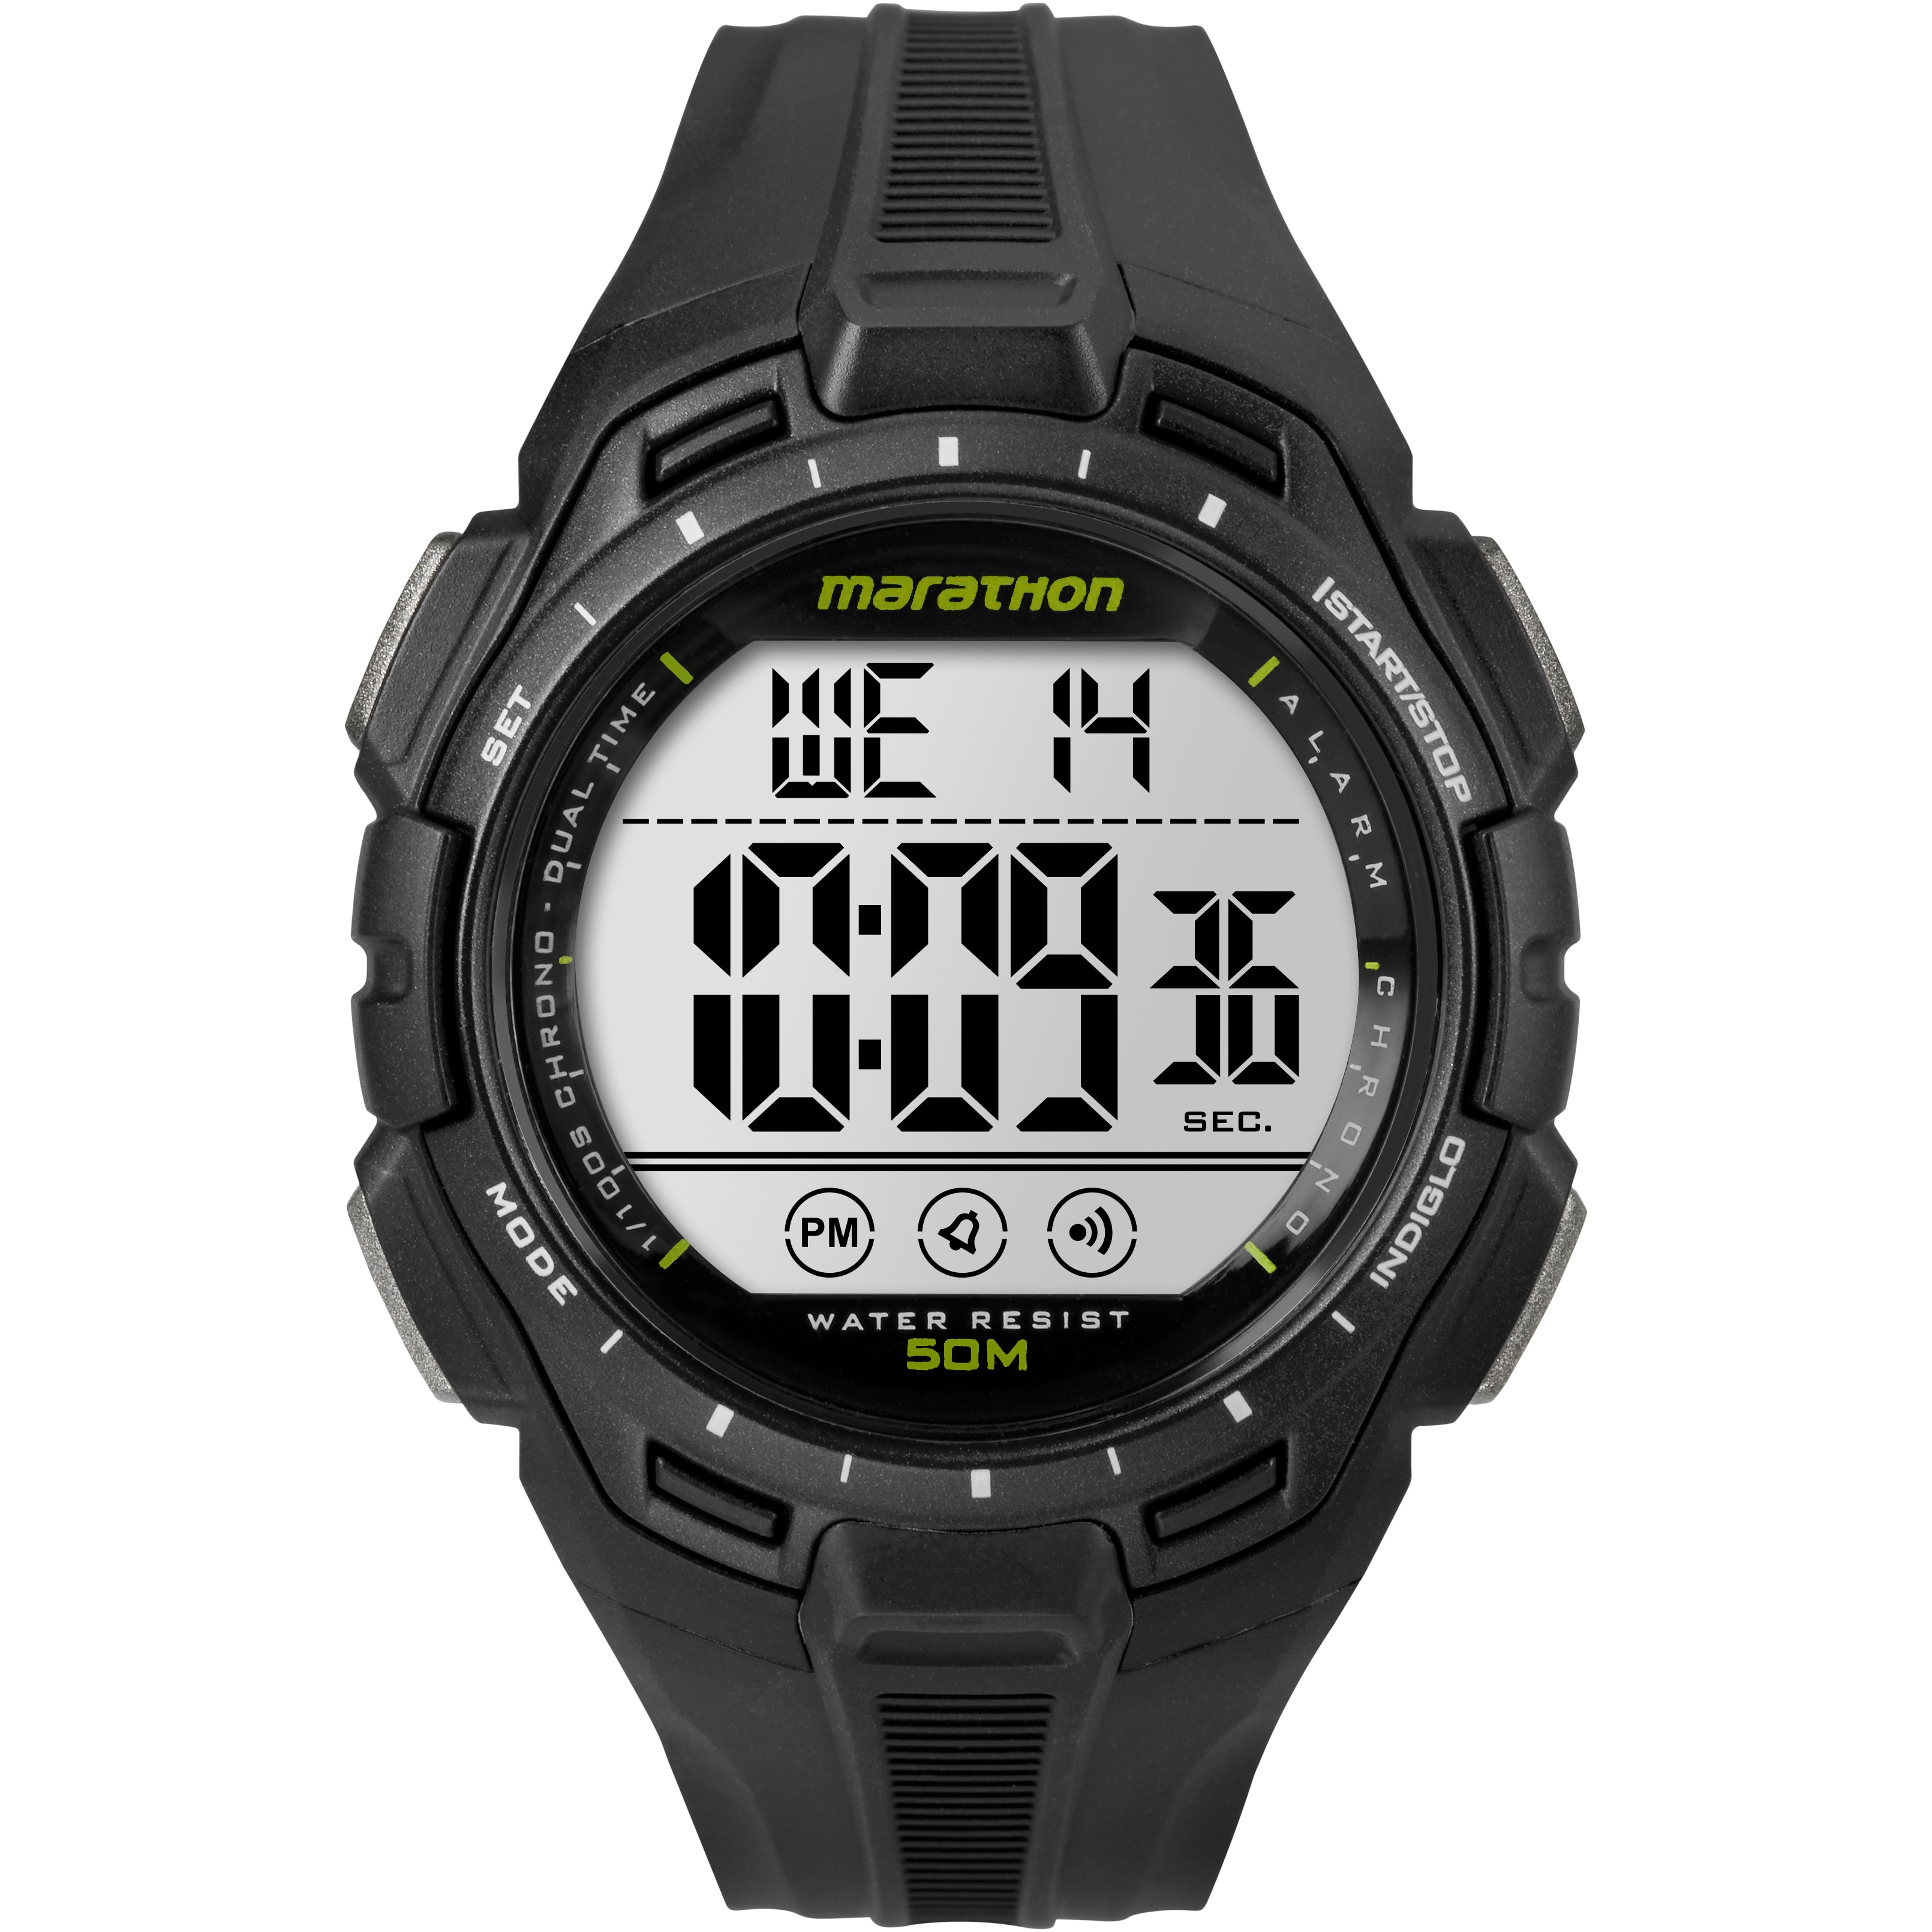 Timex TW5K94800M6 Marathon by Digital Full-Size Watch (Fu...